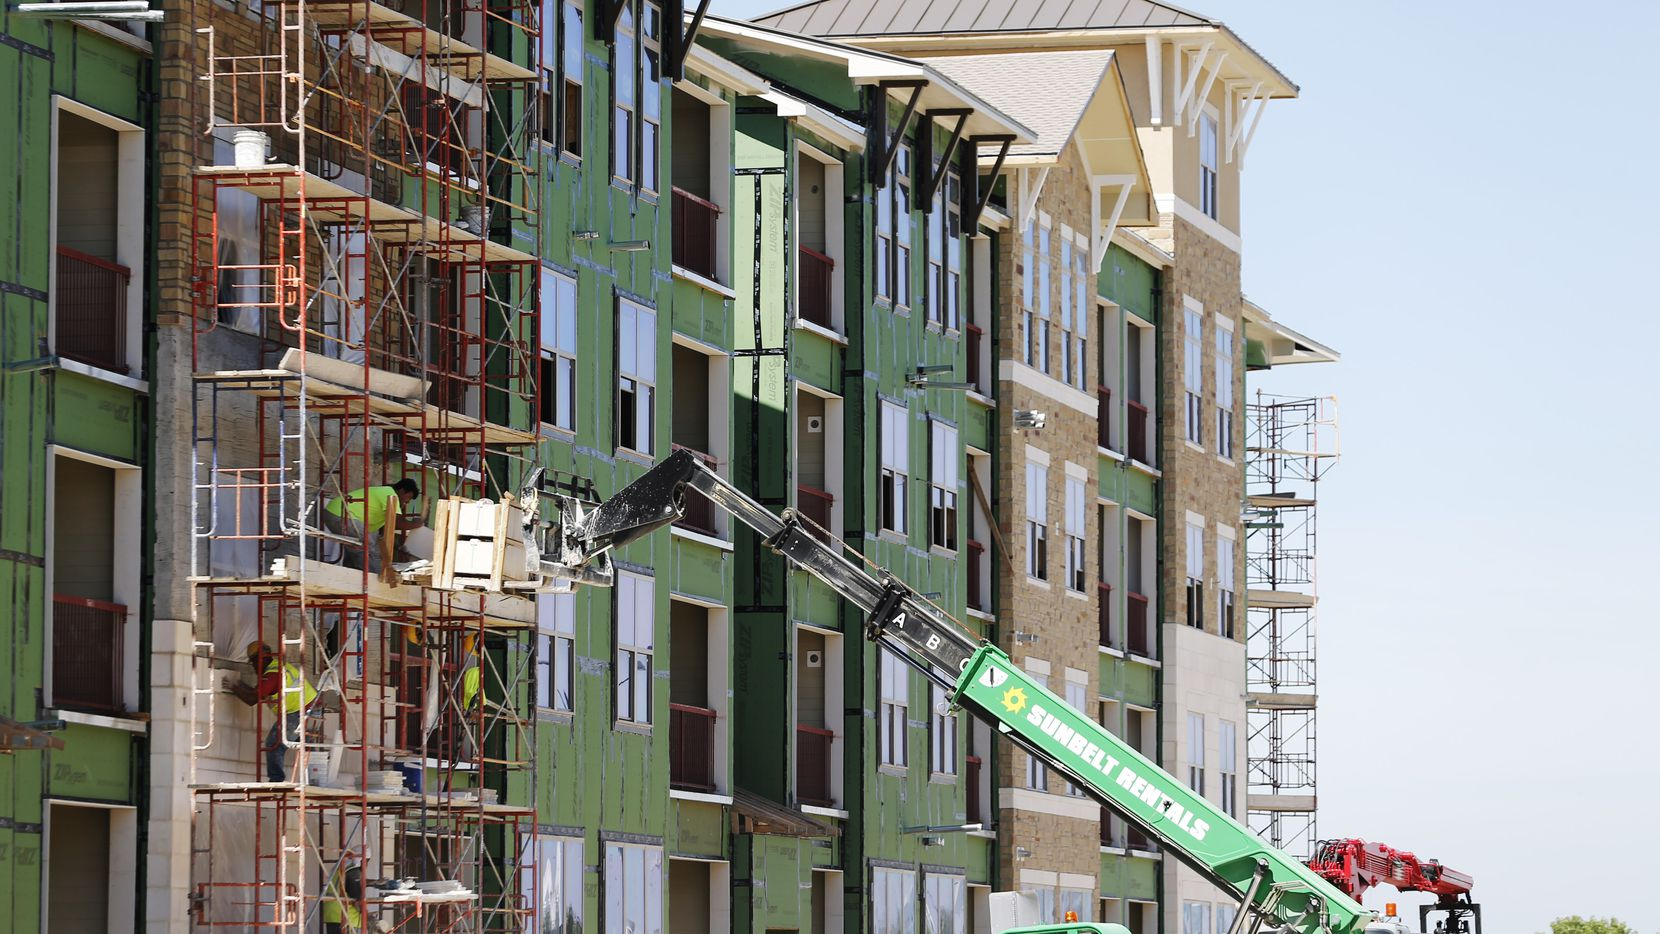 More than 40,000 apartments are under construction in North Texas.